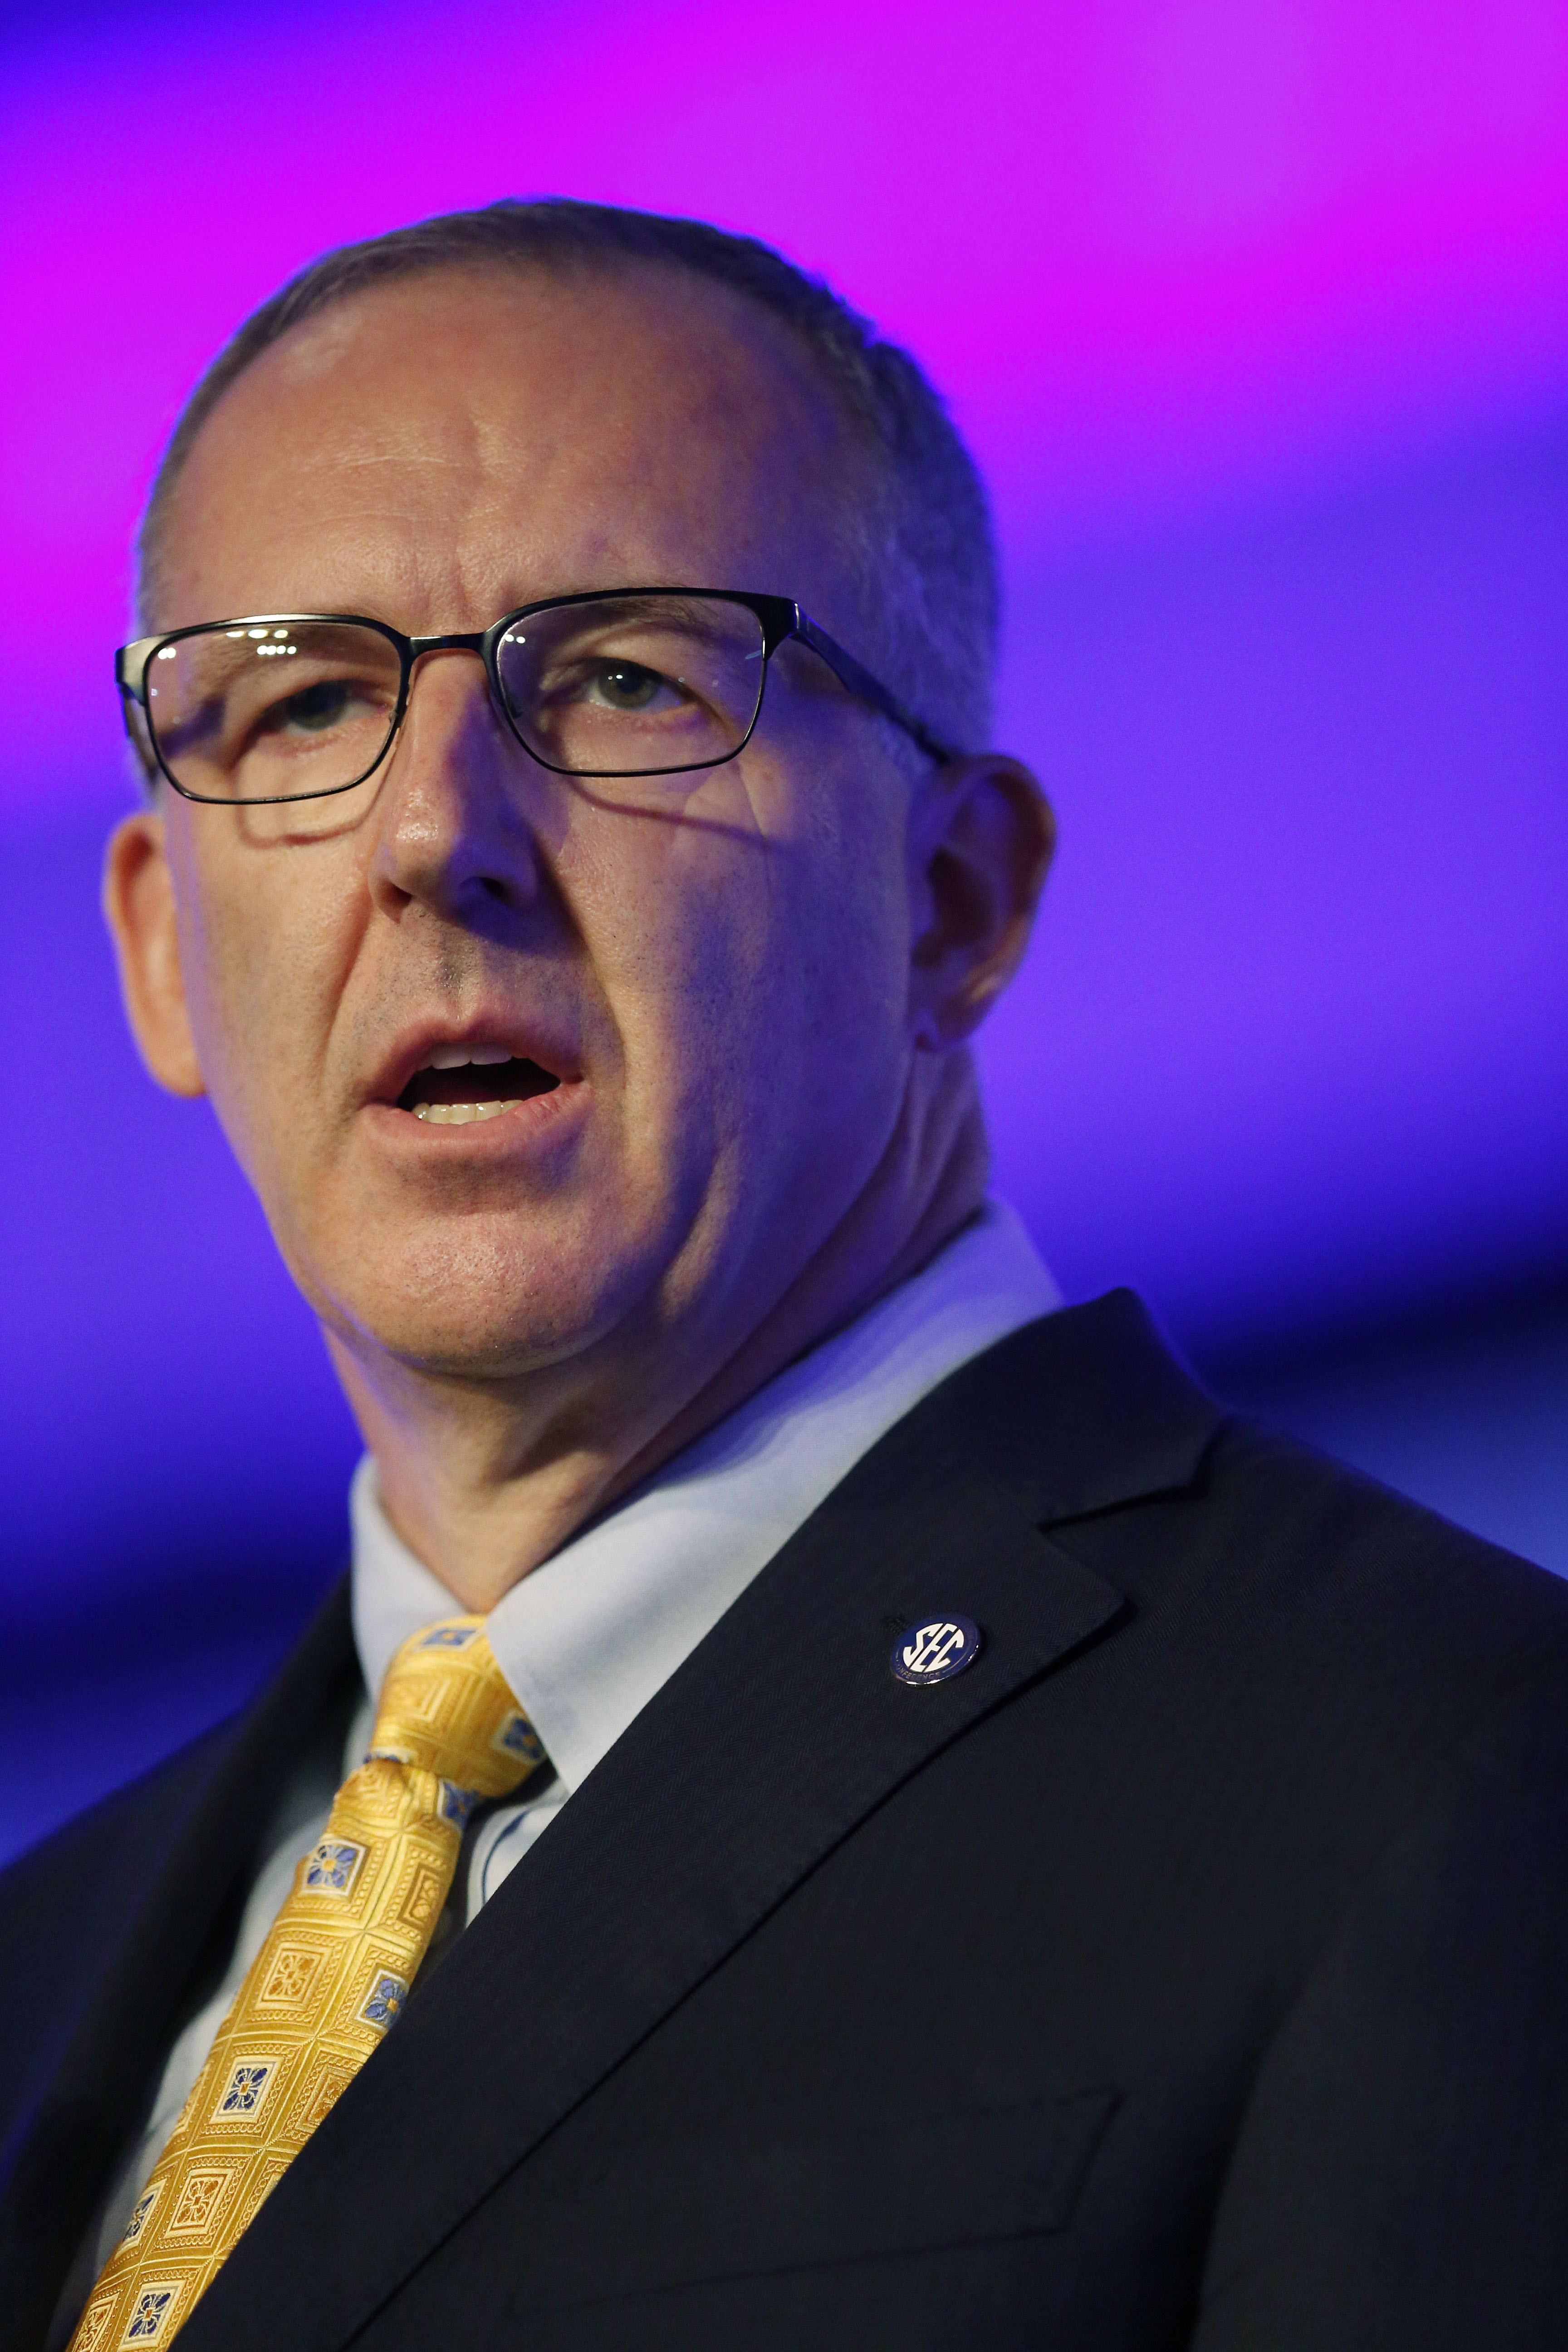 Southeastern Conference commissioner Greg Sankey speaks to the media at the Southeastern Conference NCAA college football media days, Monday, July 11, 2016, in Hoover, Ala. (AP Photo/Brynn Anderson)